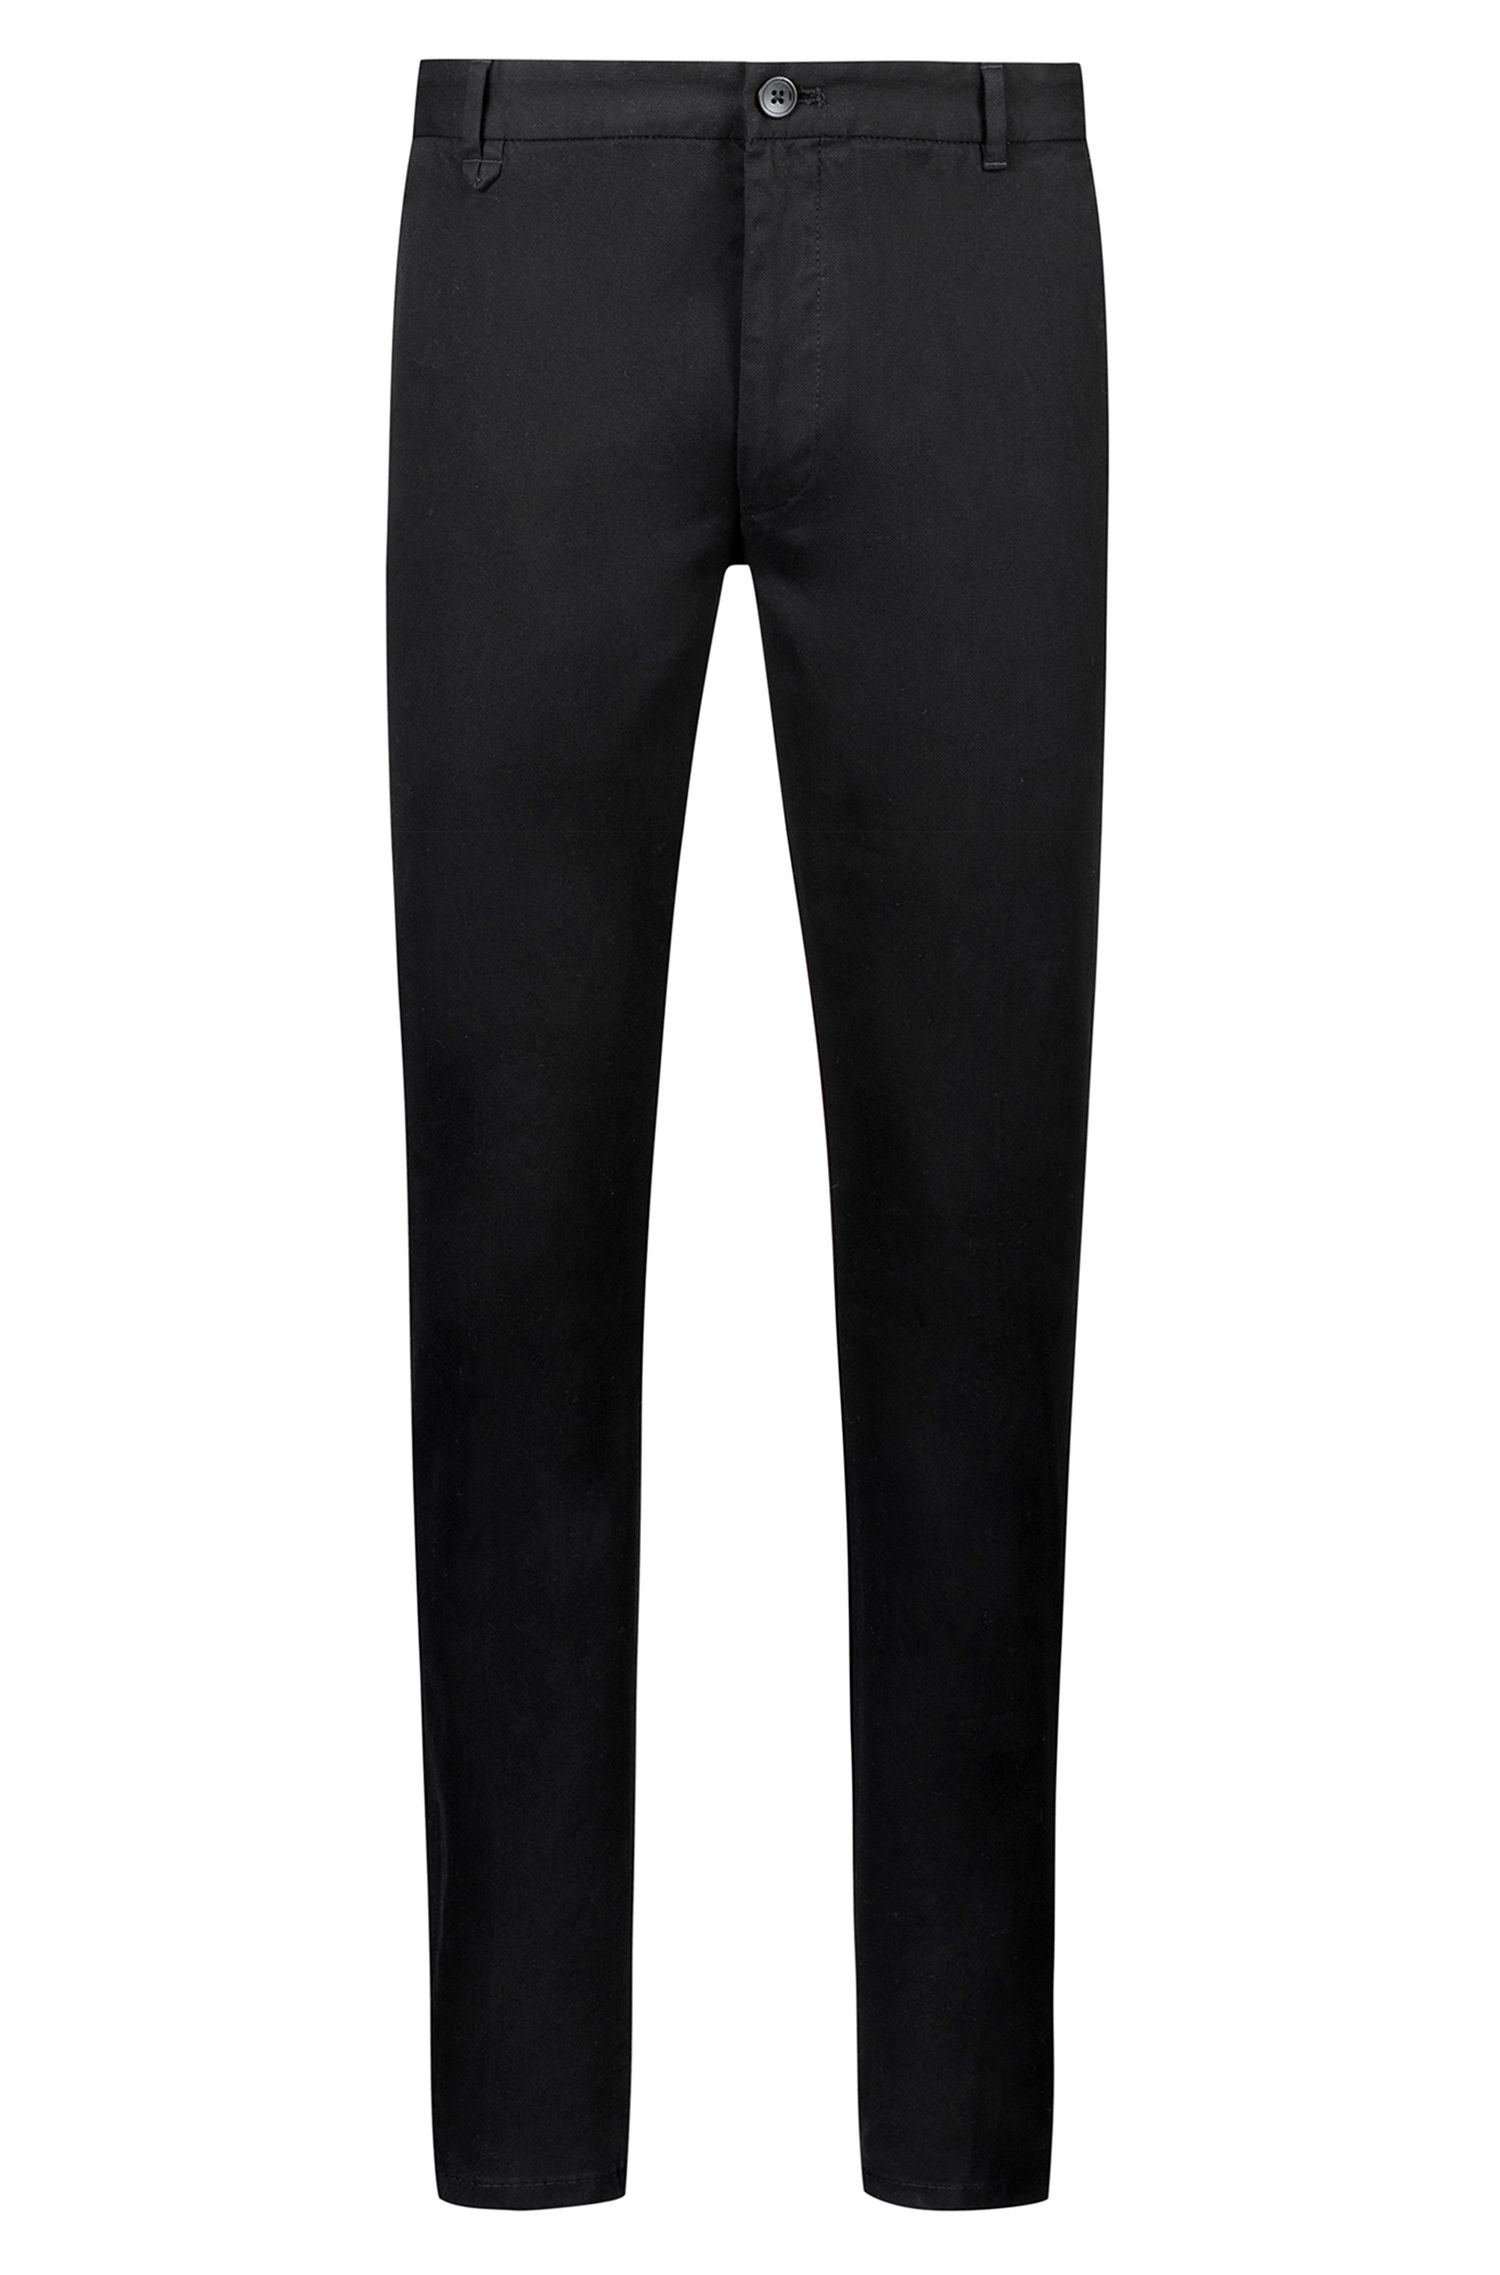 Extra-slim-fit trousers in structured stretch cotton, Black